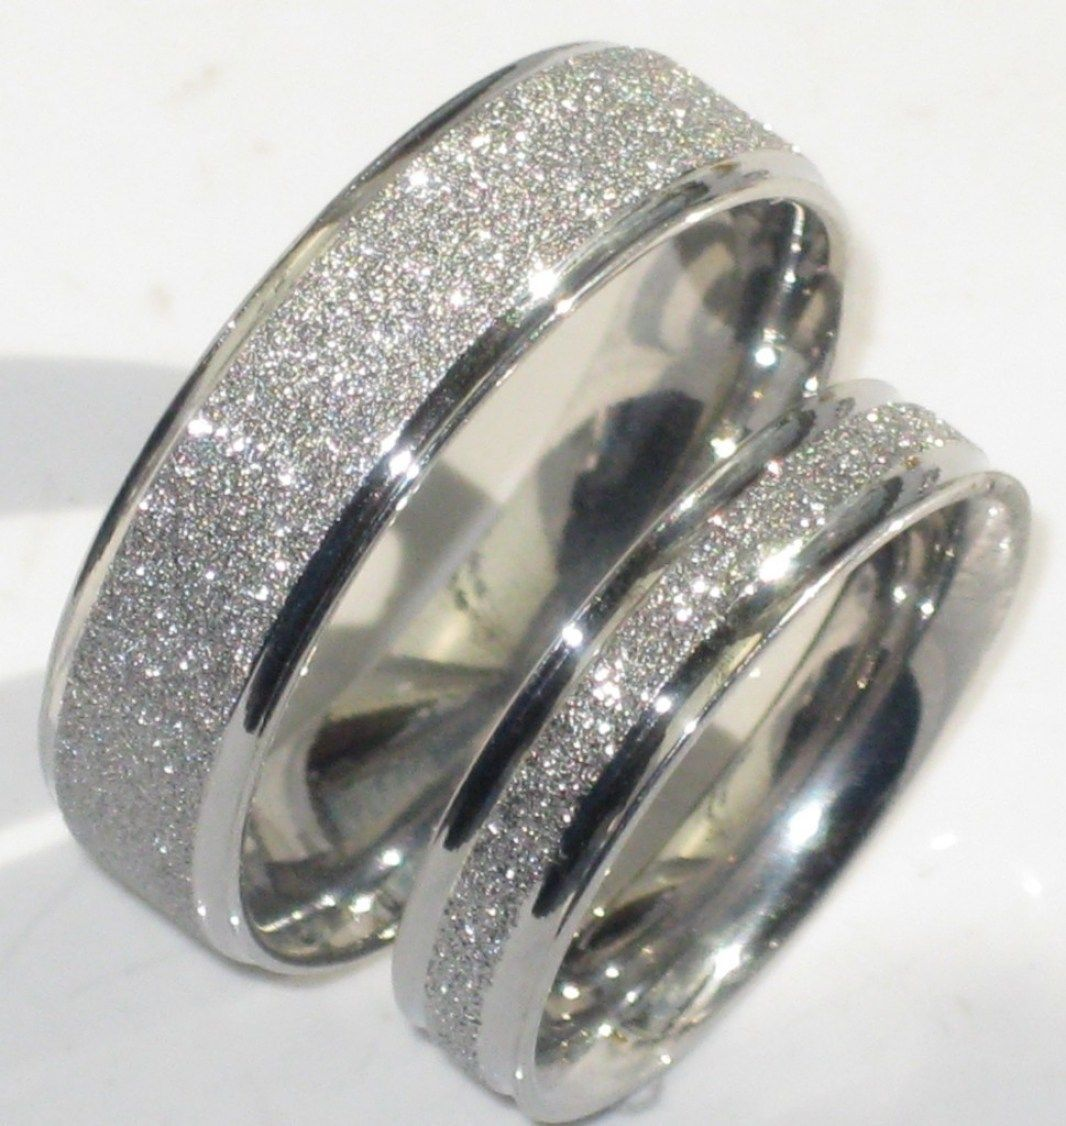 14 Delightful Find Cheap Diamond Rings Ideas Mens Wedding Rings Diamond Wedding Bands Mens Gold Wedding Band